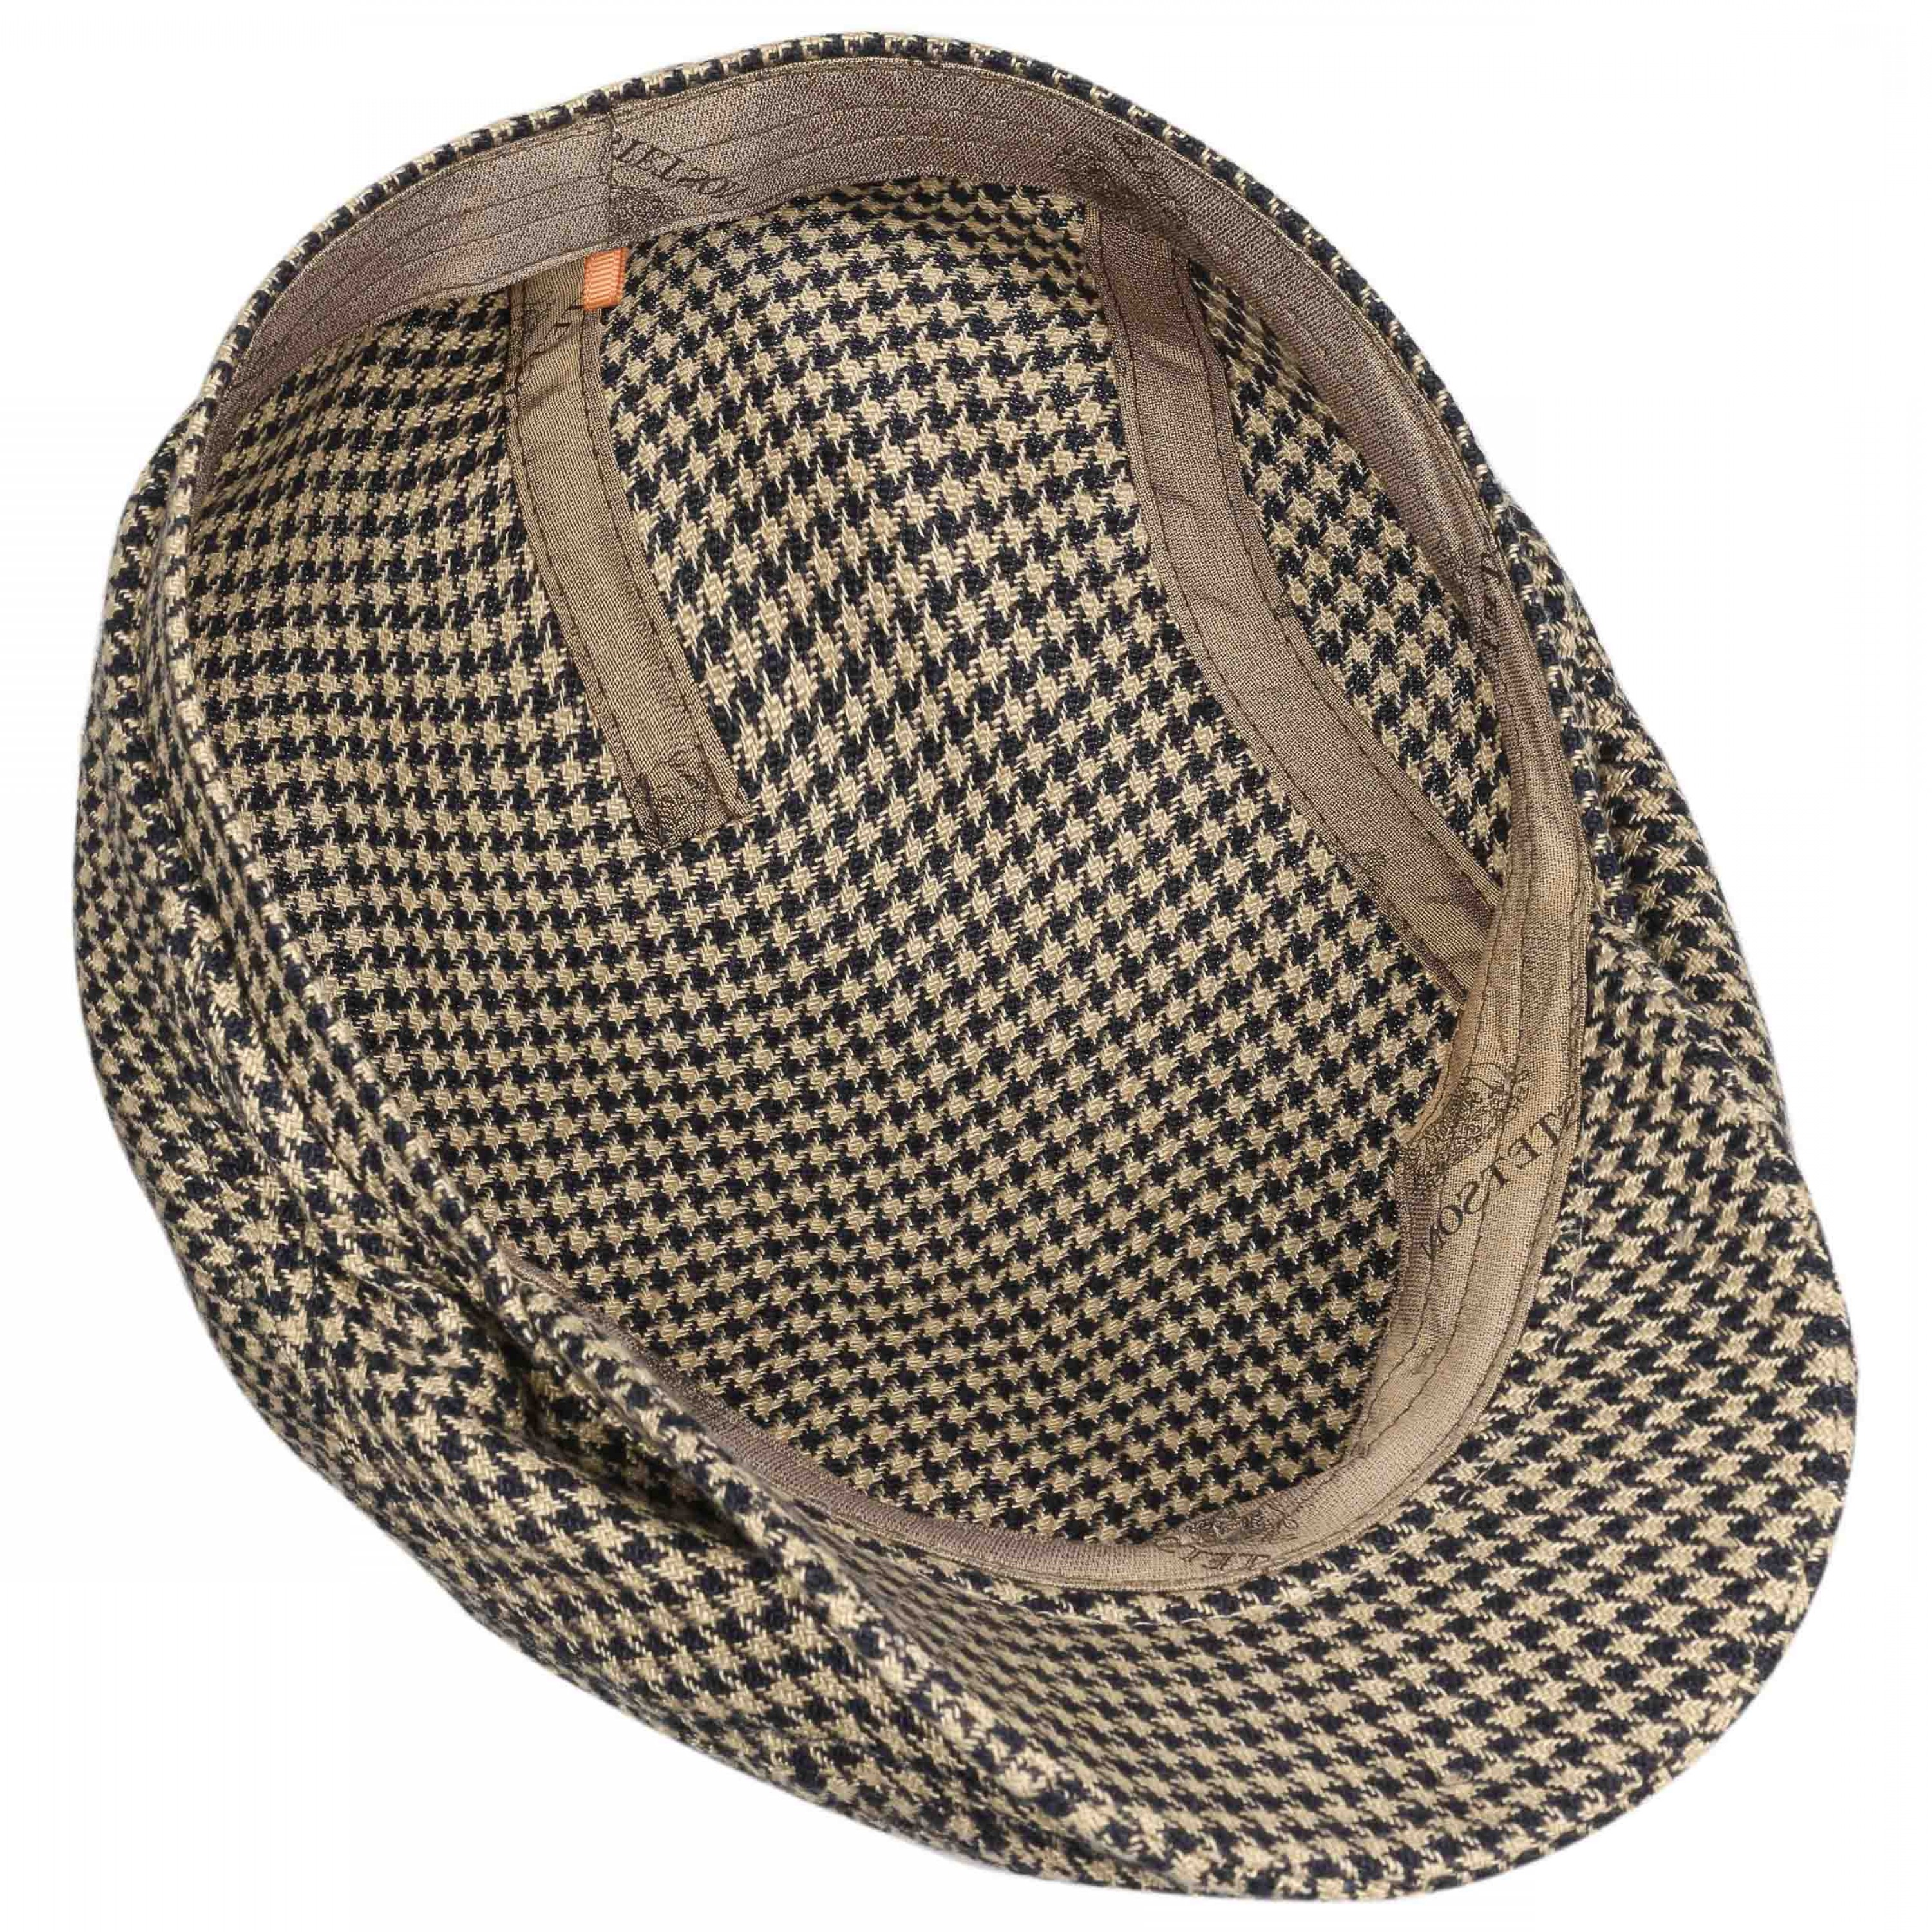 Houndstooth Hats Vector: Linen Houndstooth Flat Cap By Stetson